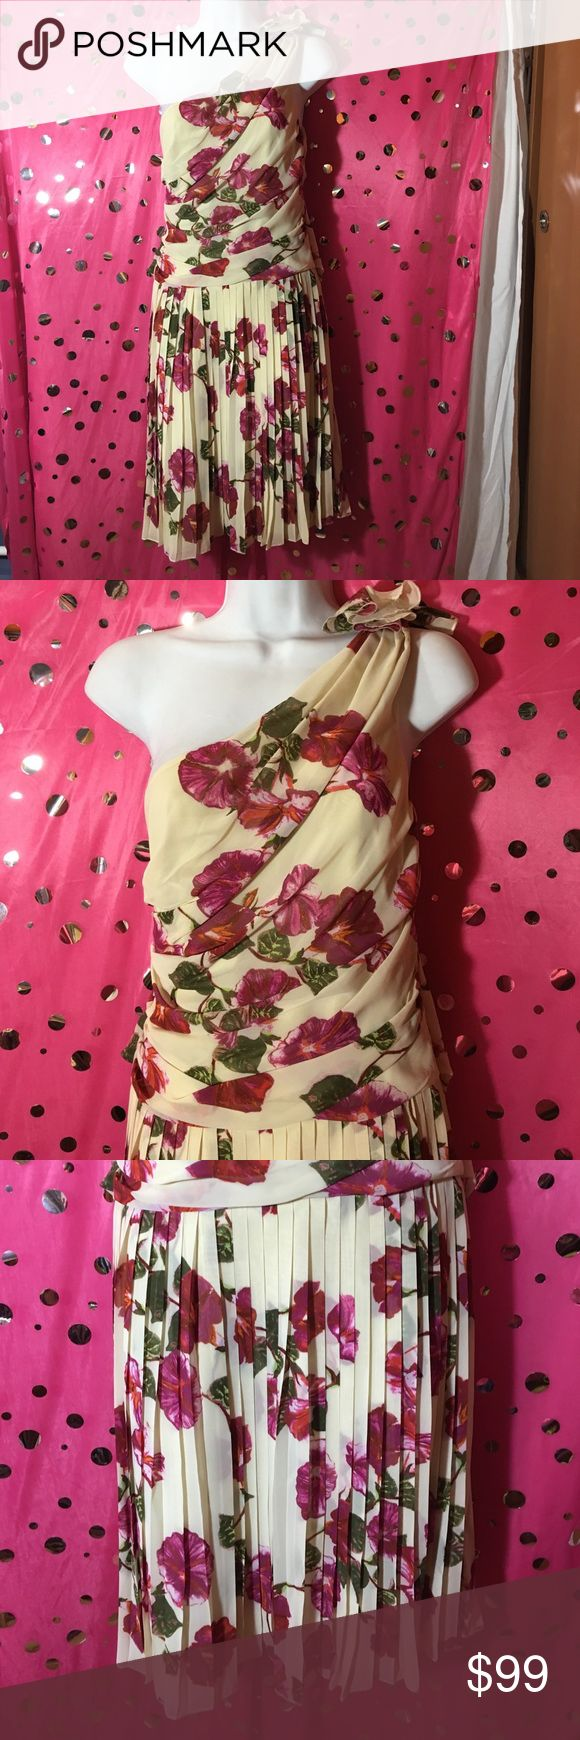 Size 4 - Make me an Offer Alberta Ferretti  Size 4 Floral Dress with One strap  Tie back Size zipper  New without tags  Cream/Beige Alberta Ferretti Dresses Midi